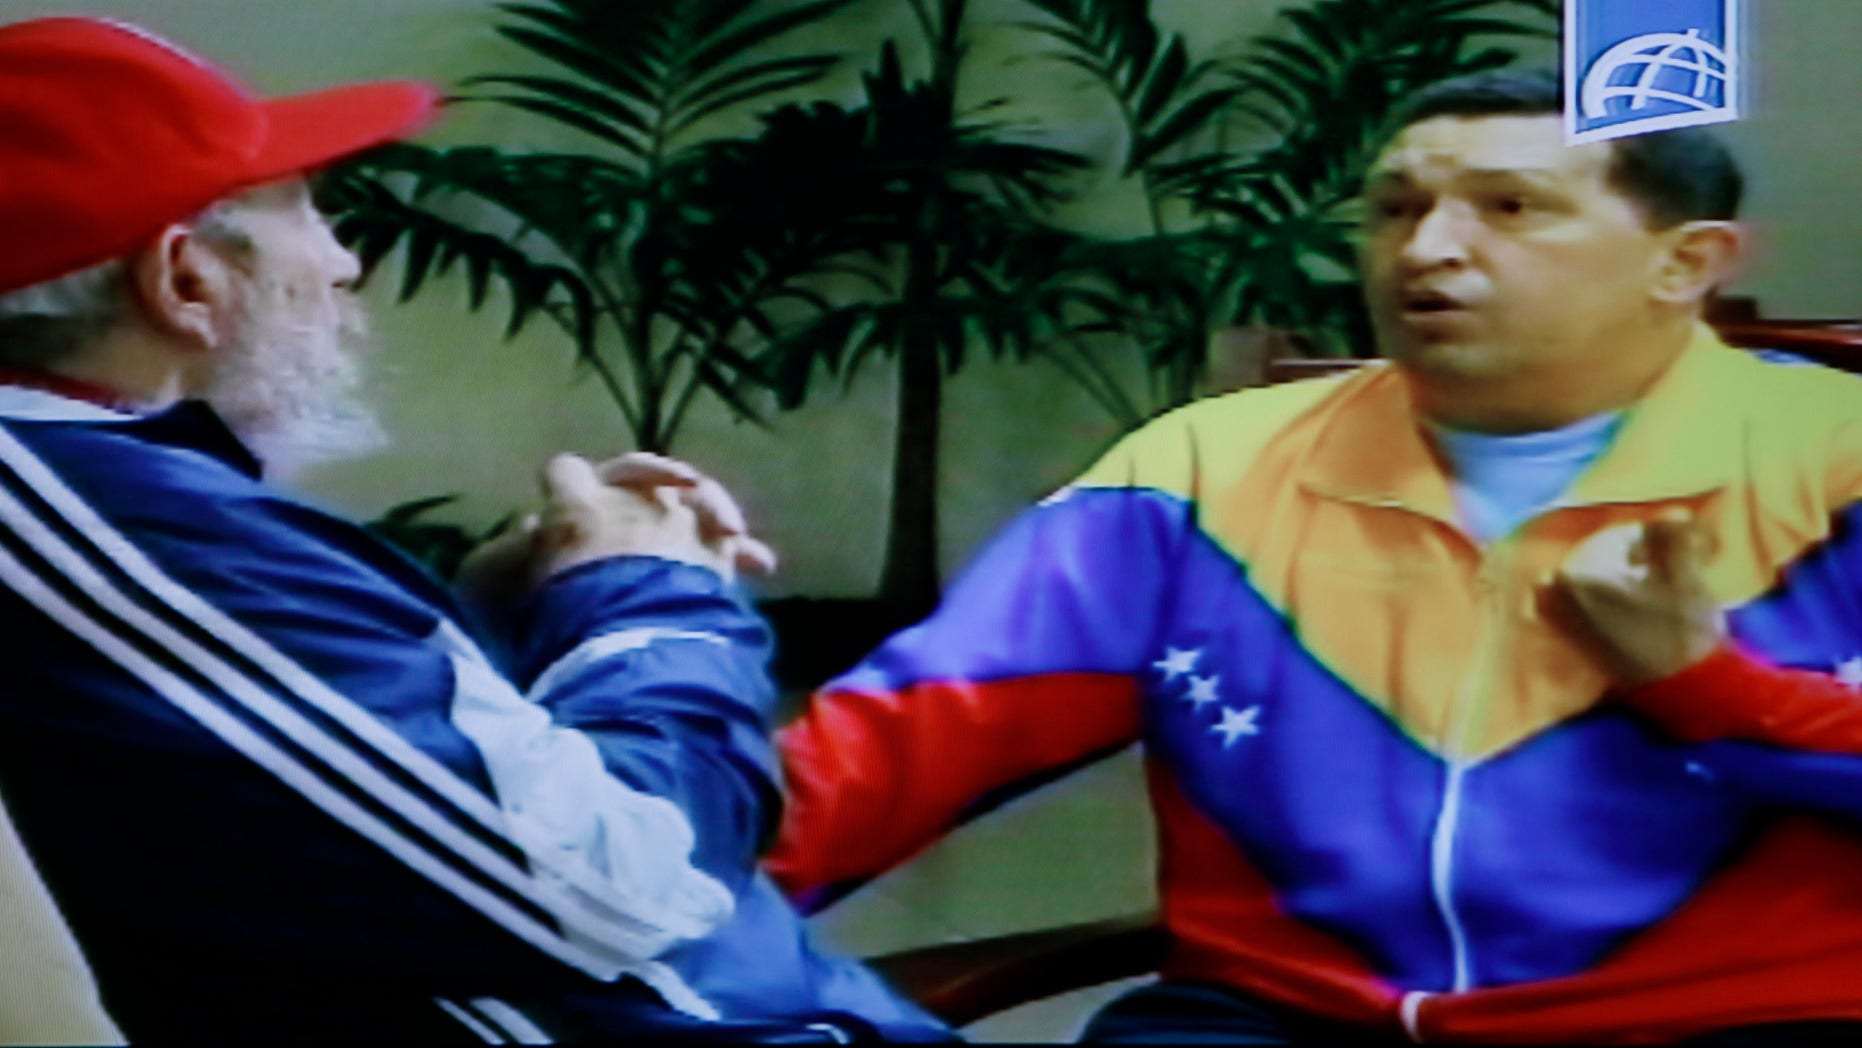 June 28: In this frame grab taken from video shown on Cuban state television, Cuba's Fidel Castro, left, speaks with Venezuela's President Hugo Chavez in an unknown location in Havana, Cuba.